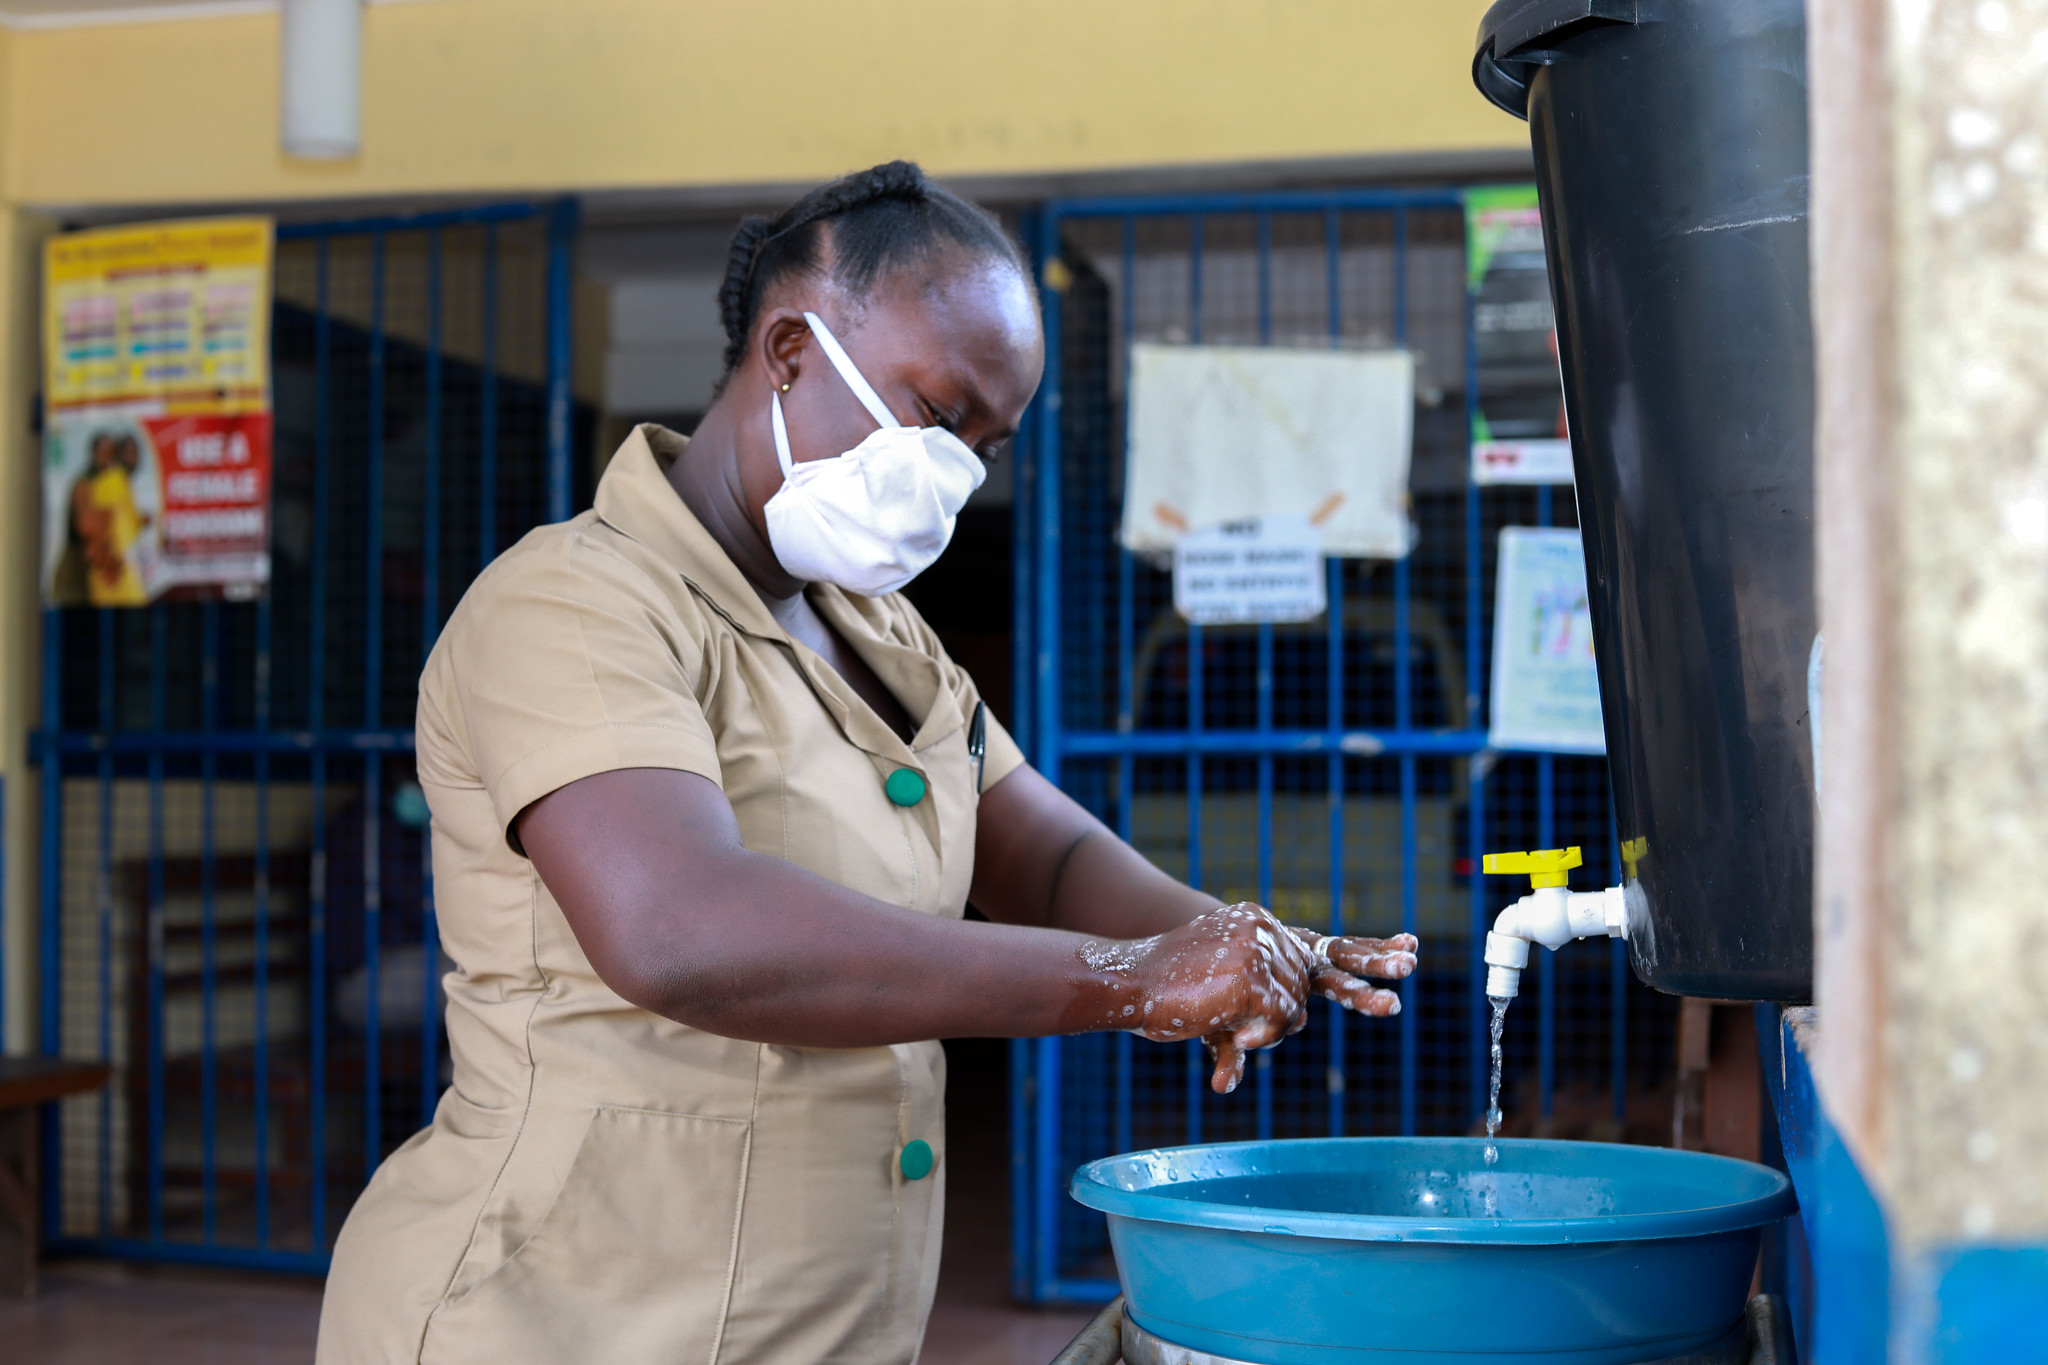 Community Health Nurse Olivia Yeboah thoroughly washes her hands at the Akropong Clinic in Ghana. Photo by Emmanuel Attramah, PMI Impact Malaria / U.S. President's Malaria Initiative.